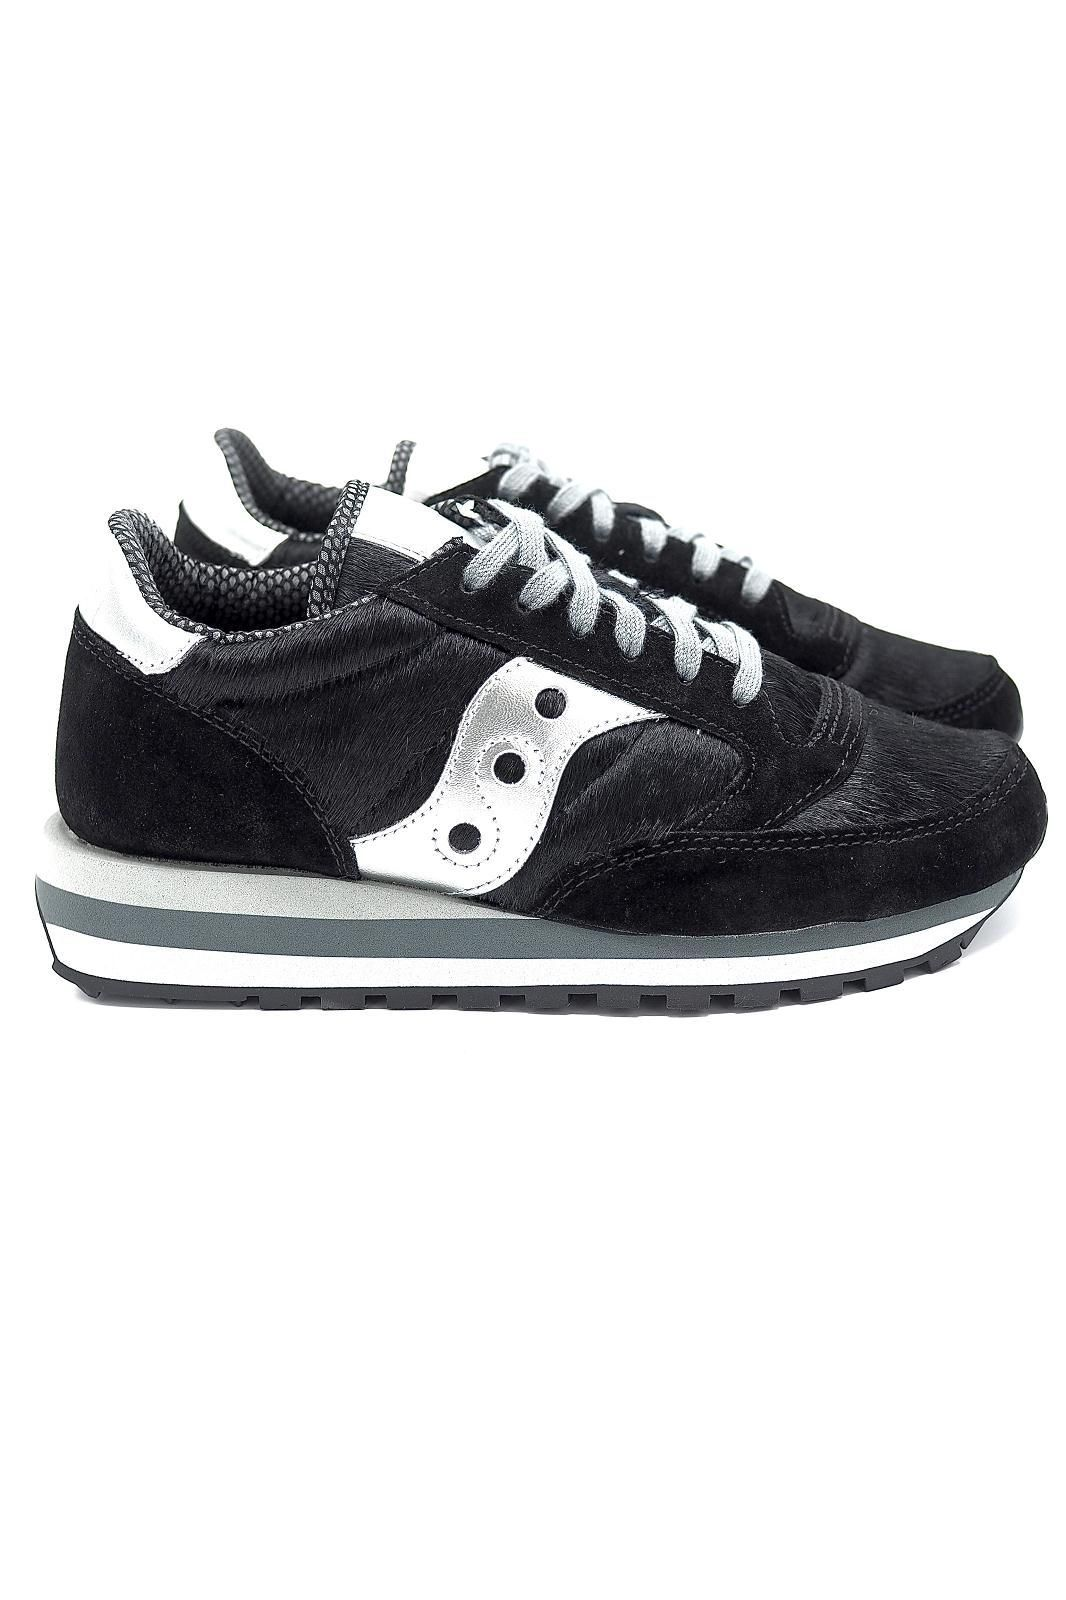 Saucony basket bas Noir femmes (SAUC-Runner Fashion Women - JAZZ Triple poil noir/noir) - Marine | Much more than shoes